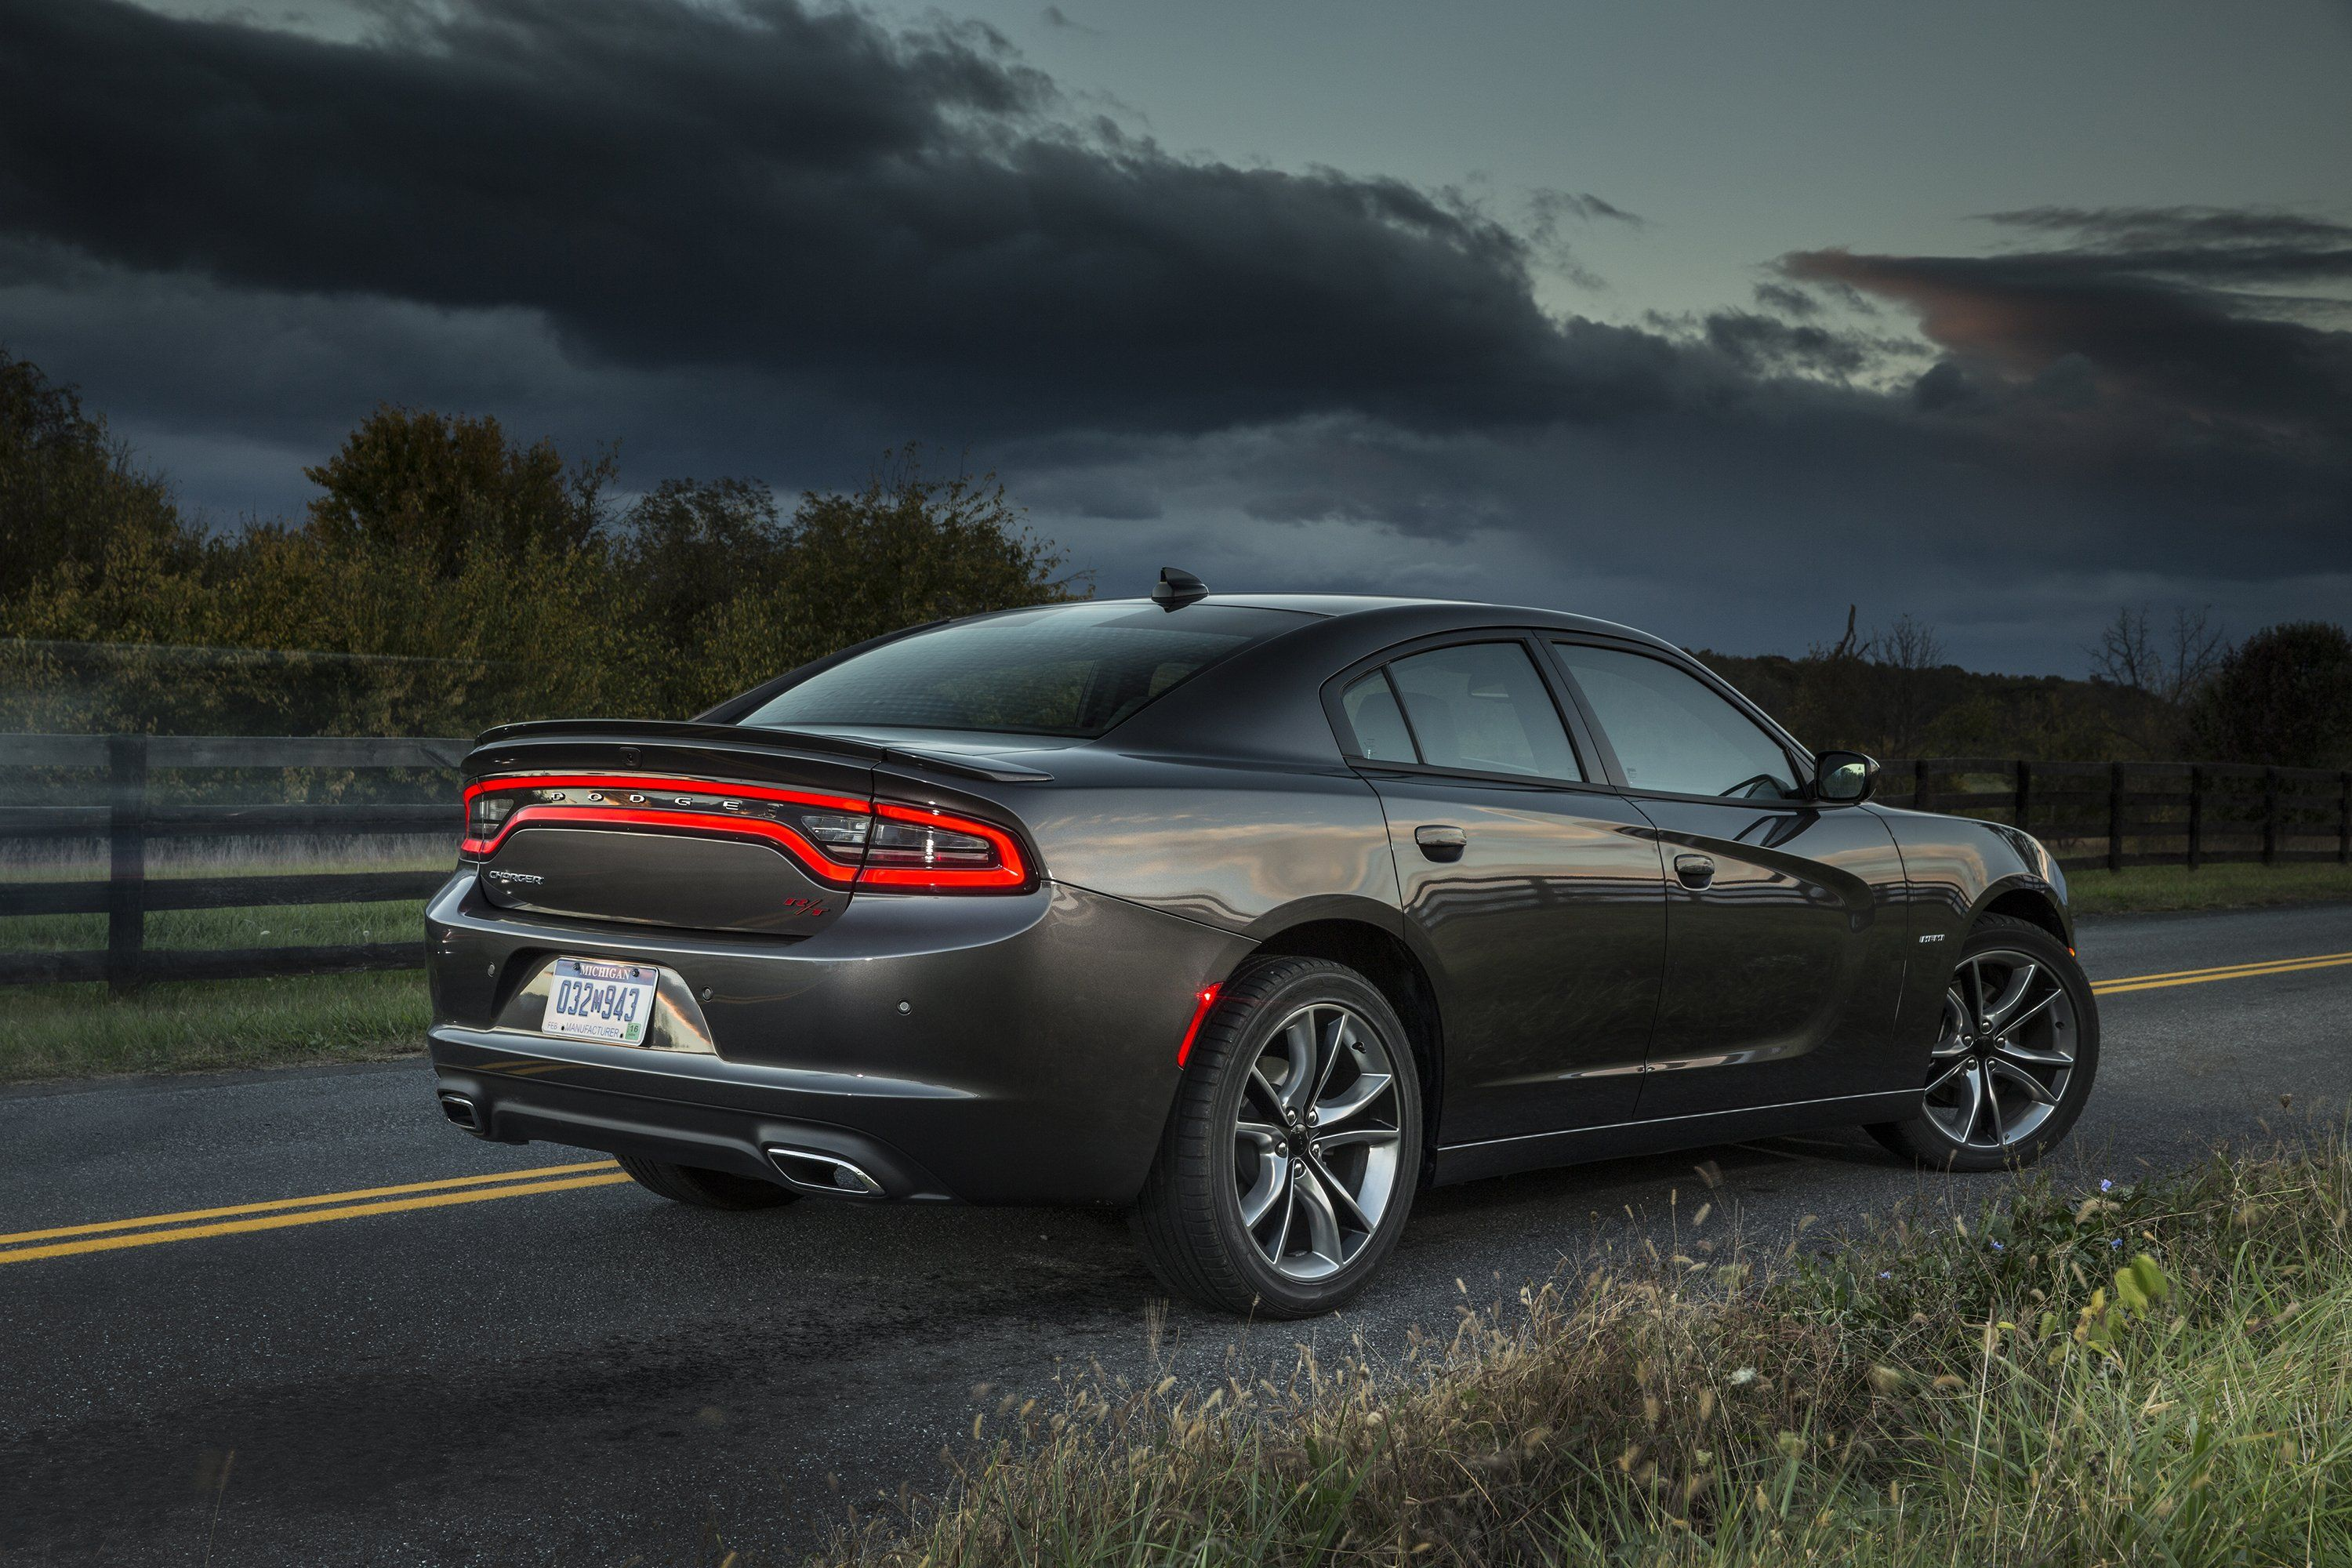 pin r t charger l dodge d wallpaper muscle rt